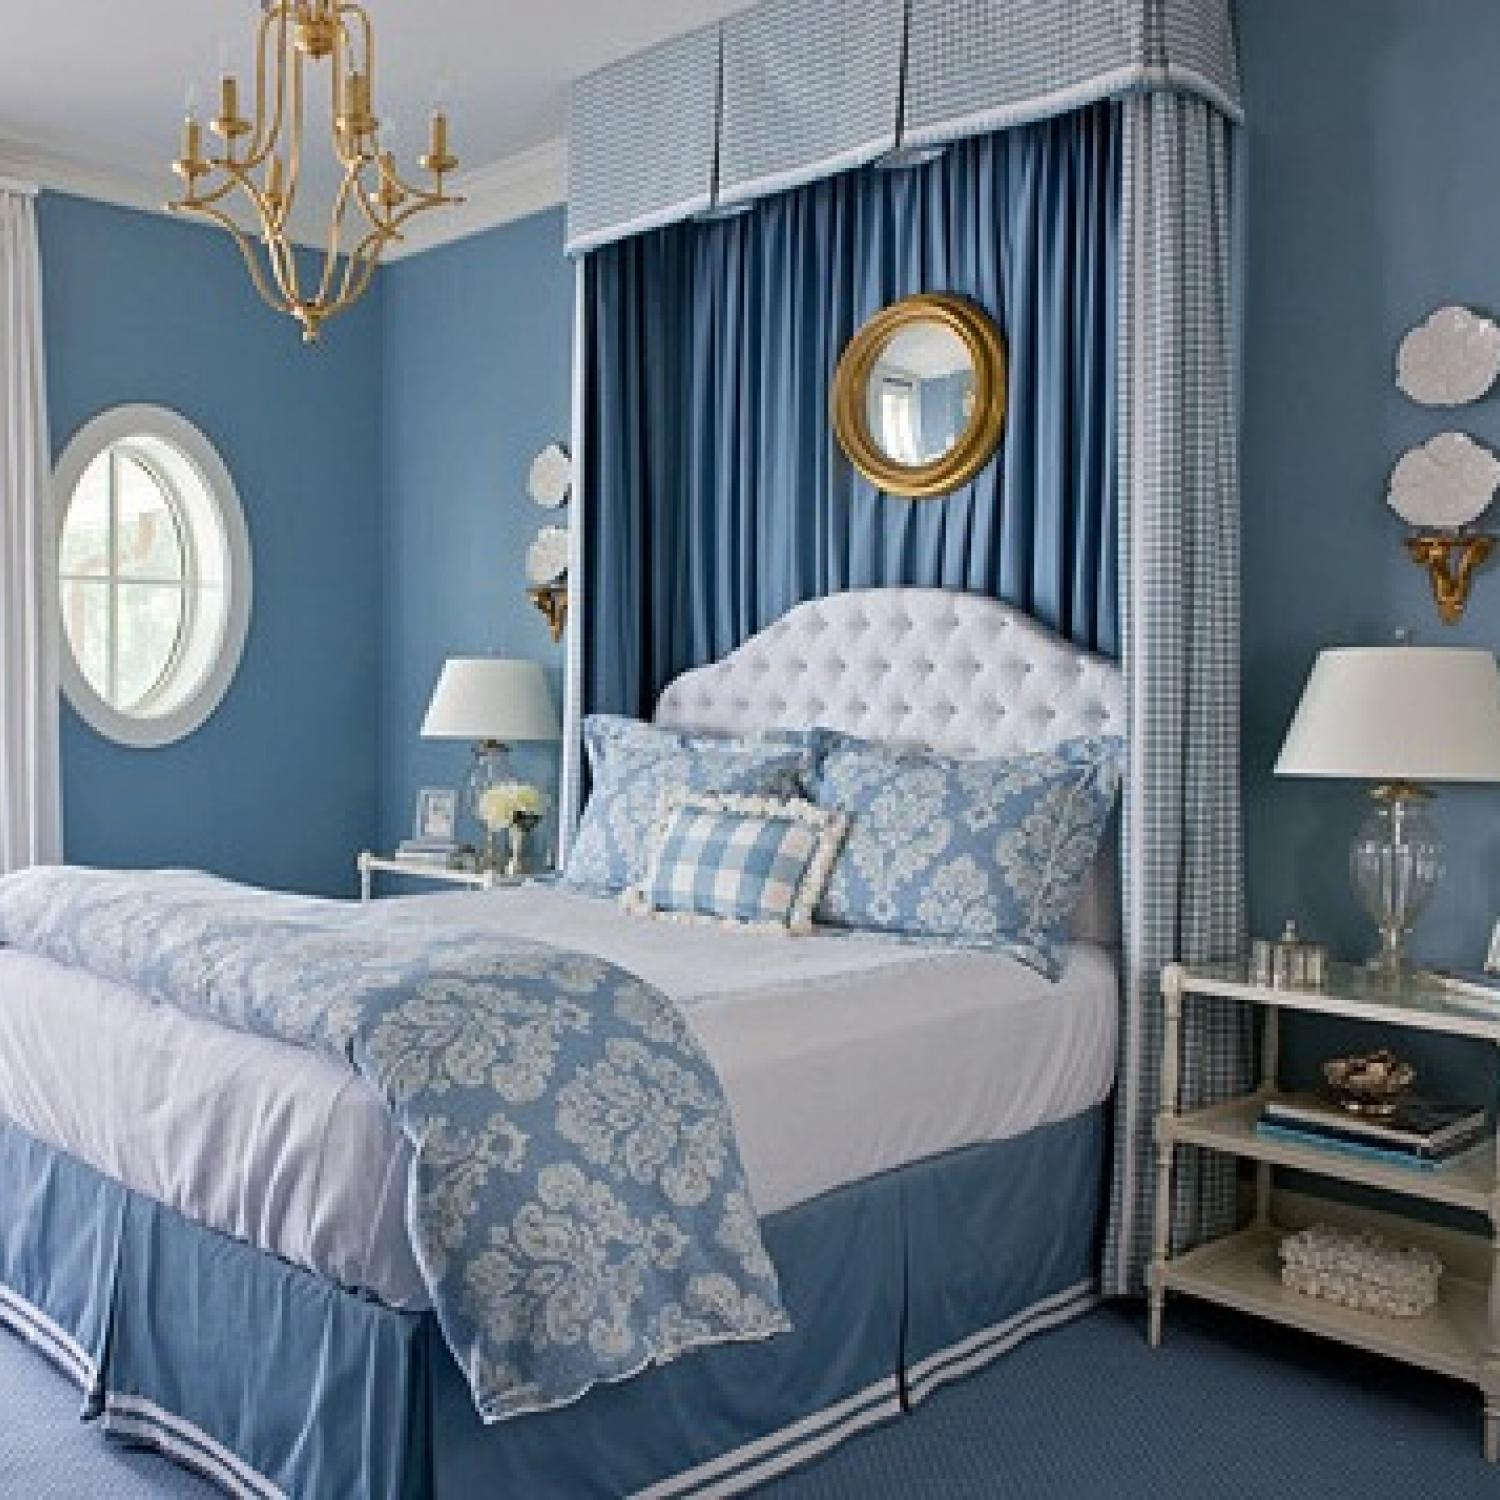 Bedroom Decorating Ideas: Beautiful Blue Bedrooms